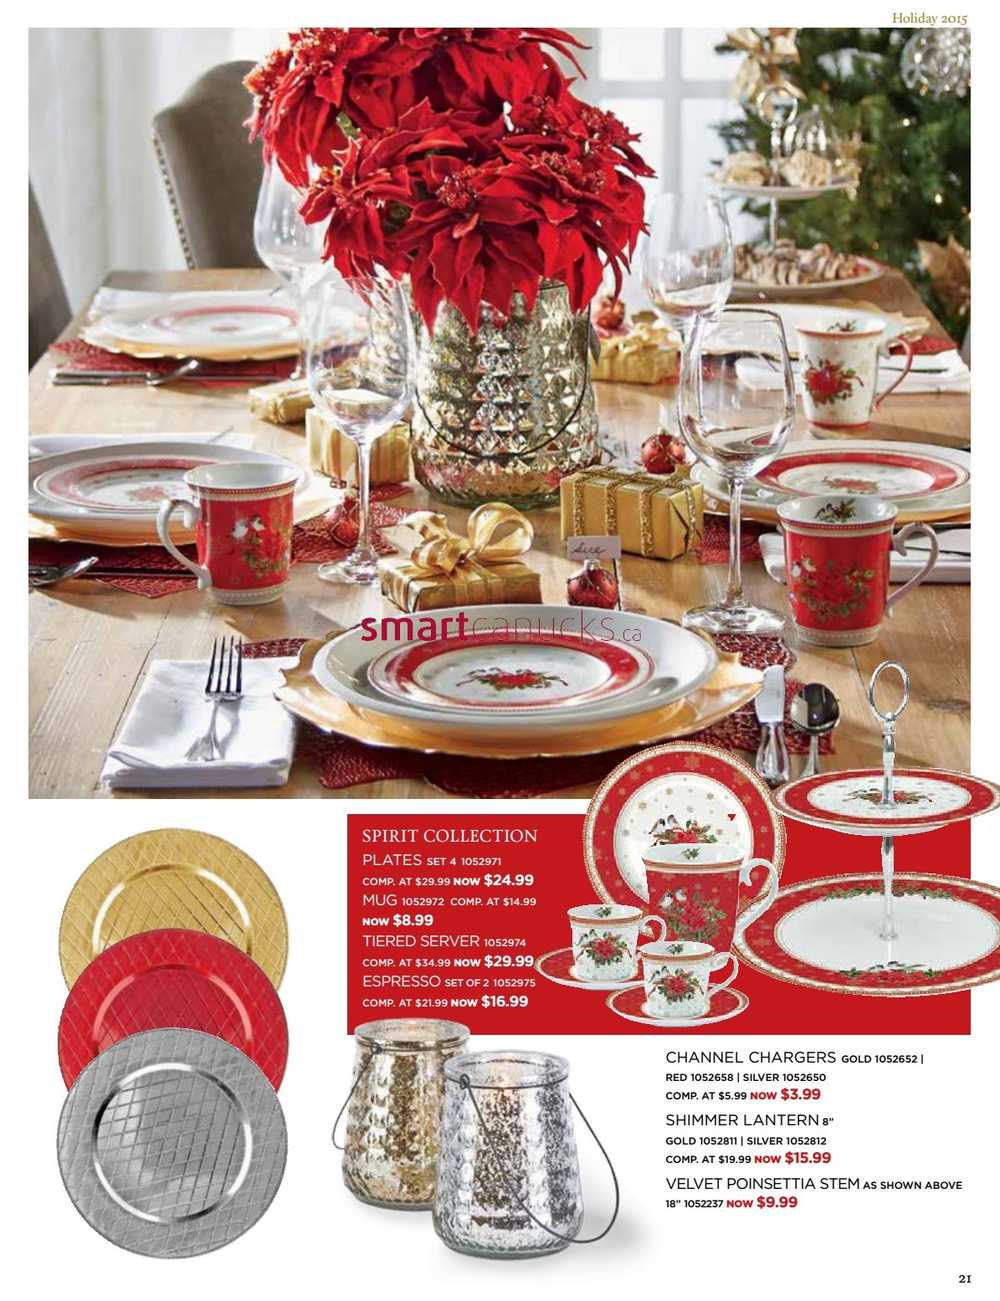 sc 1 st  Smart Canucks & Bowring Holiday Catalog November 19 to December 24